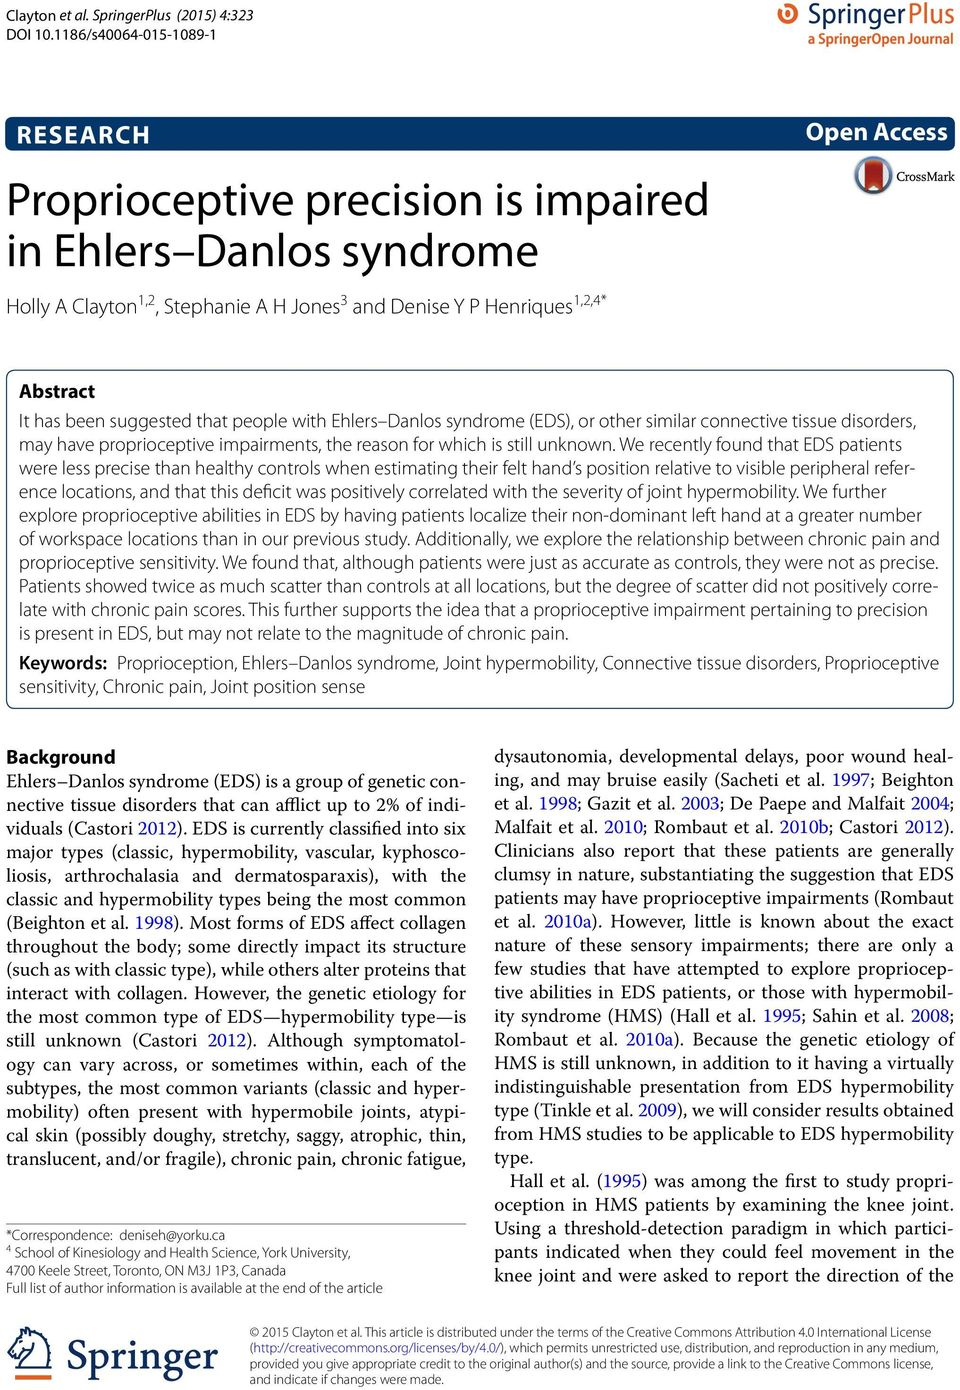 been suggested that people with Ehlers Danlos syndrome (EDS), or other similar connective tissue disorders, may have proprioceptive impairments, the reason for which is still unknown.